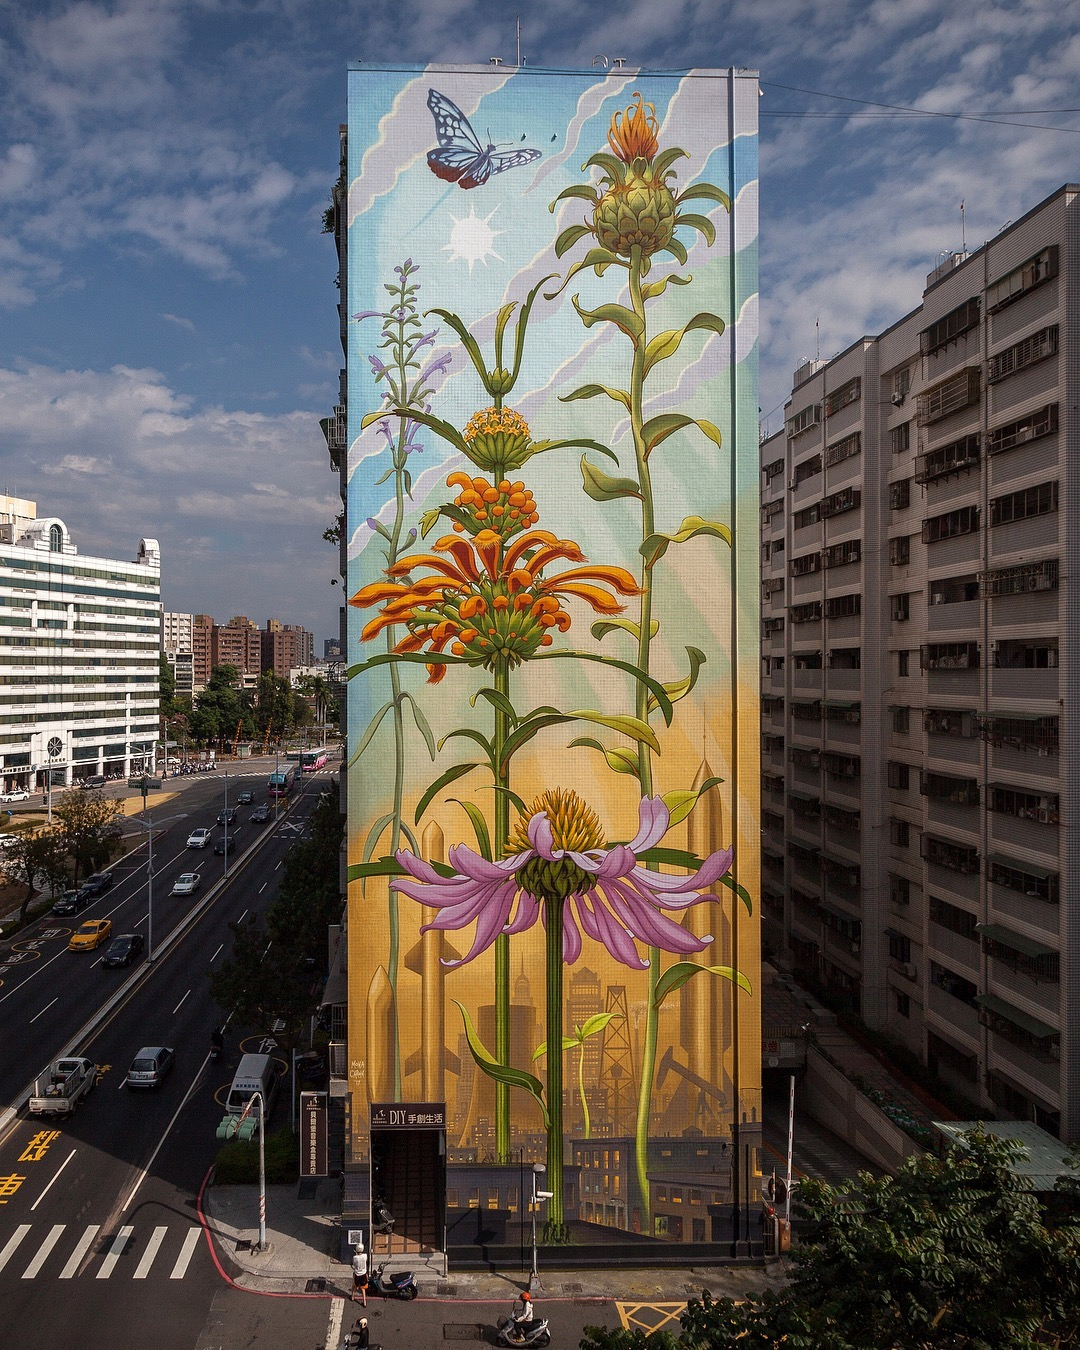 Blooming Plant Murals in the City (7 pics)